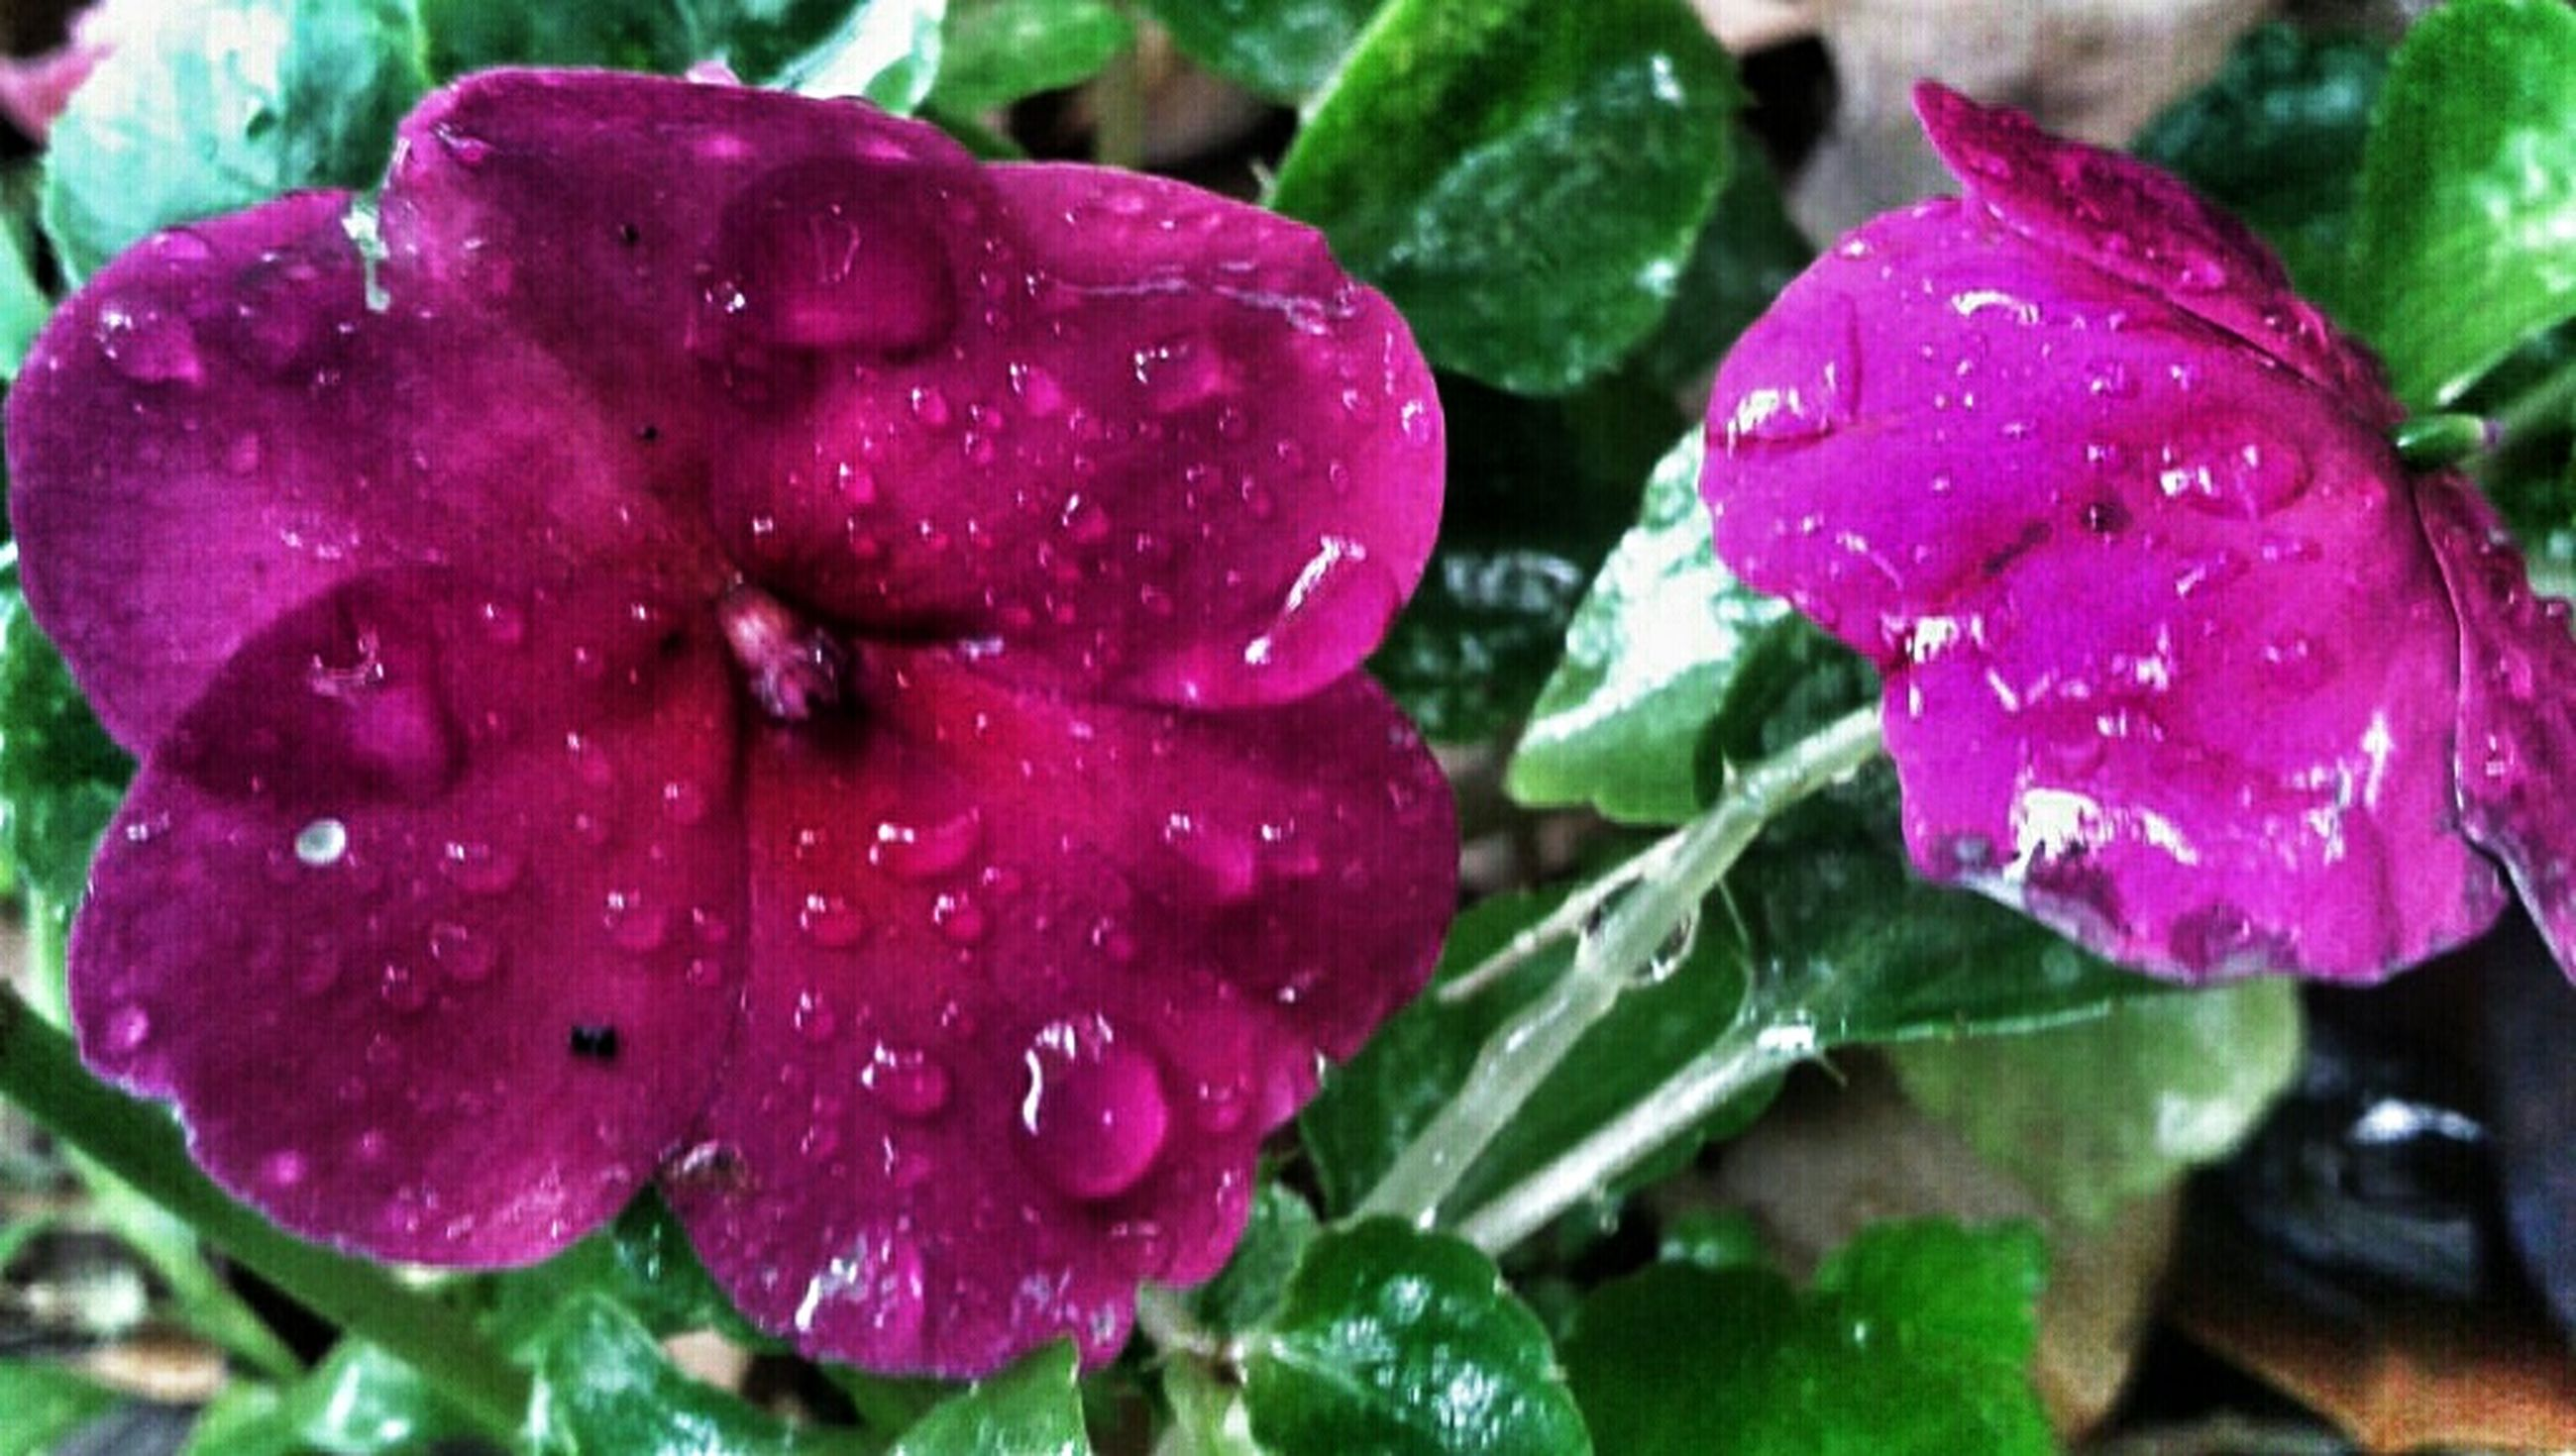 flower, drop, freshness, water, petal, wet, fragility, flower head, growth, beauty in nature, close-up, pink color, nature, dew, plant, focus on foreground, blooming, raindrop, rain, in bloom